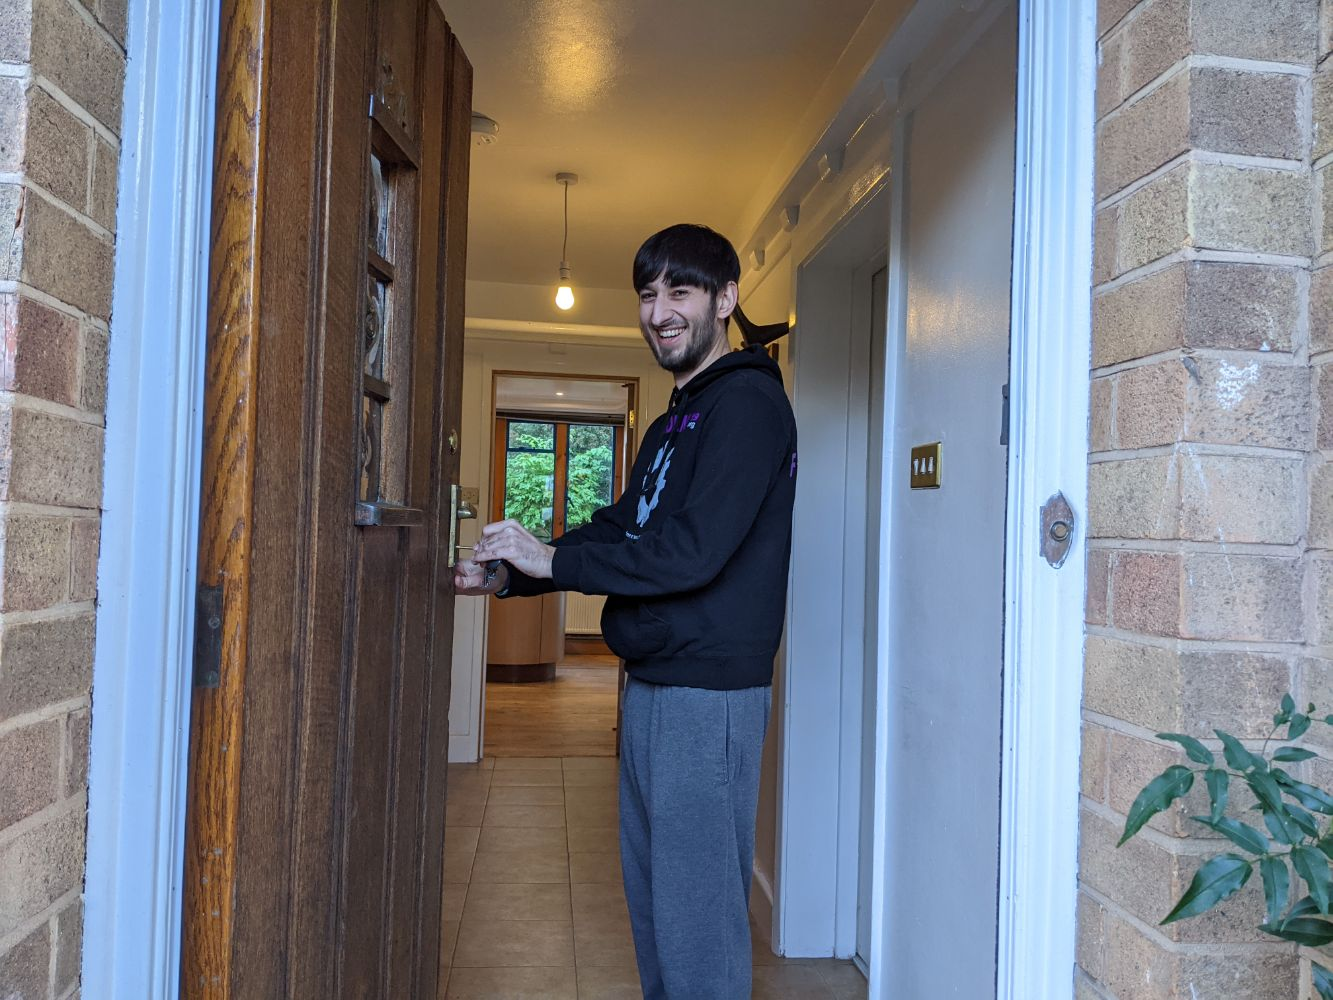 Jamie standing in the doorway of his house, with keys in hand, pretending to be opening it for the first time